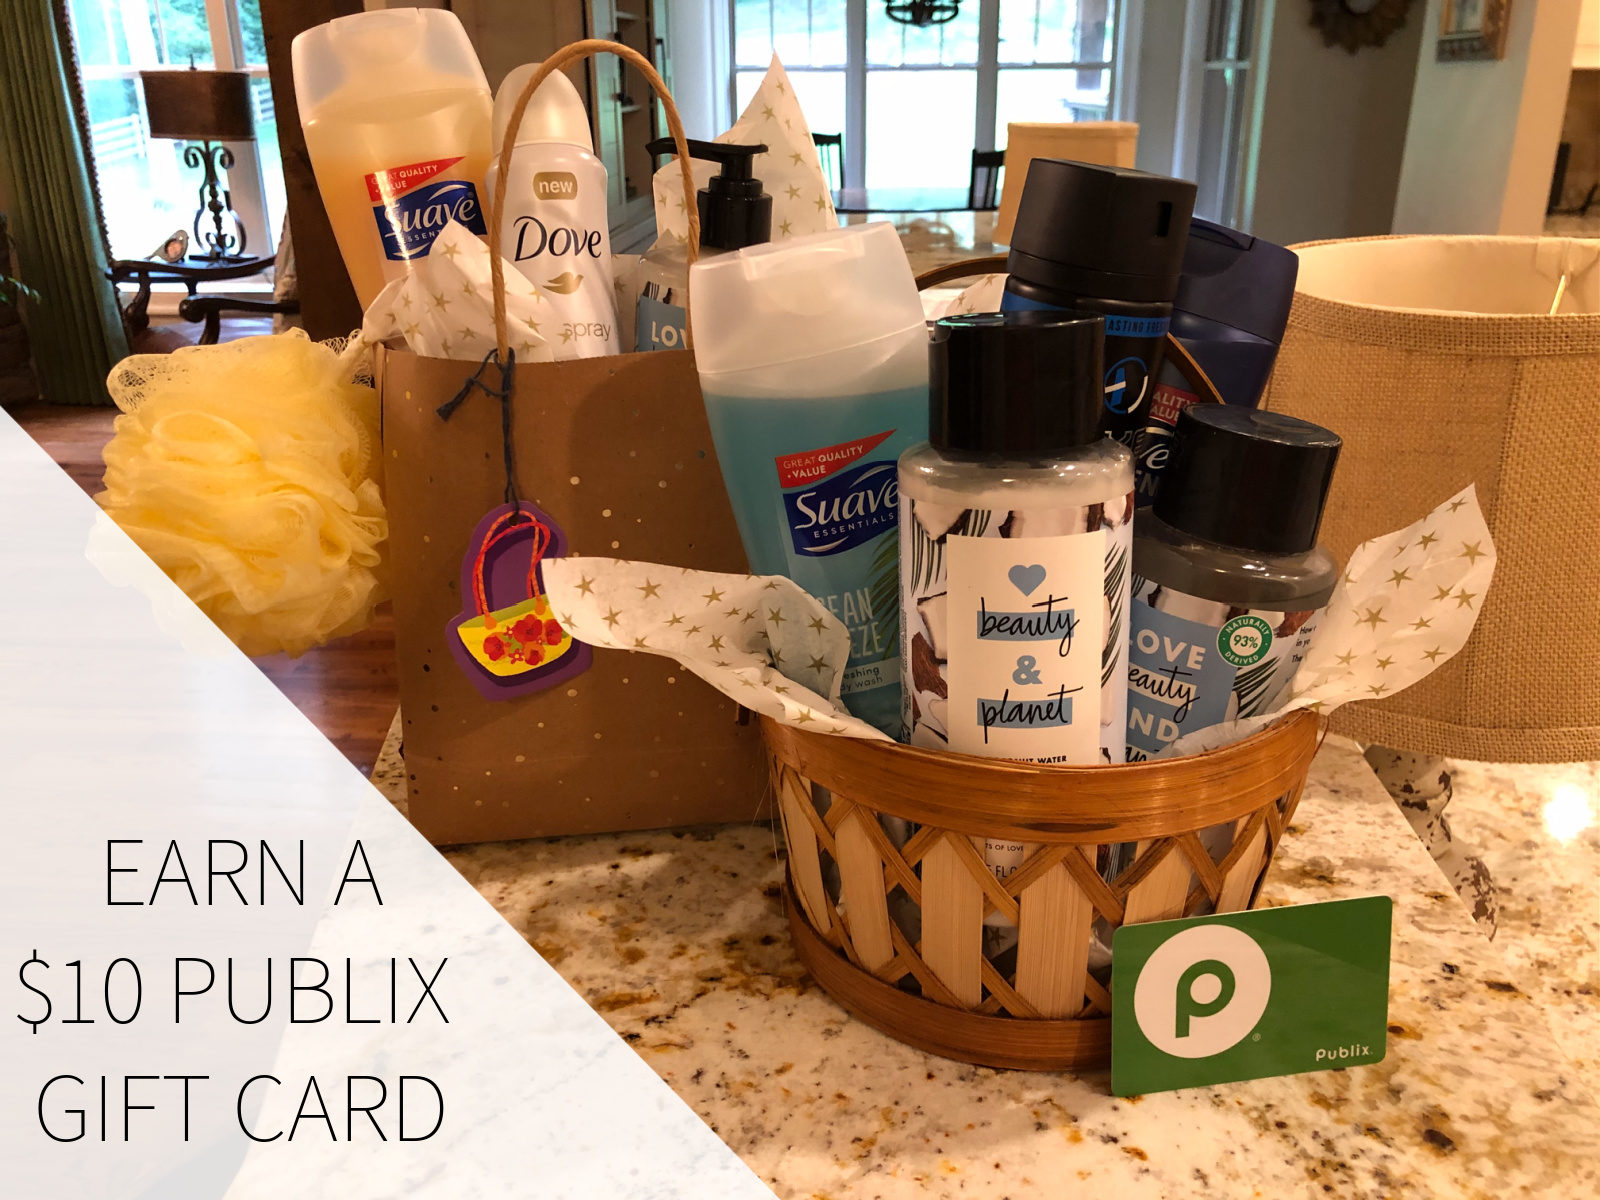 Earn Up To $50 In Gift Cards When You Purchase Your Favorite Unilever Products At Publix on I Heart Publix